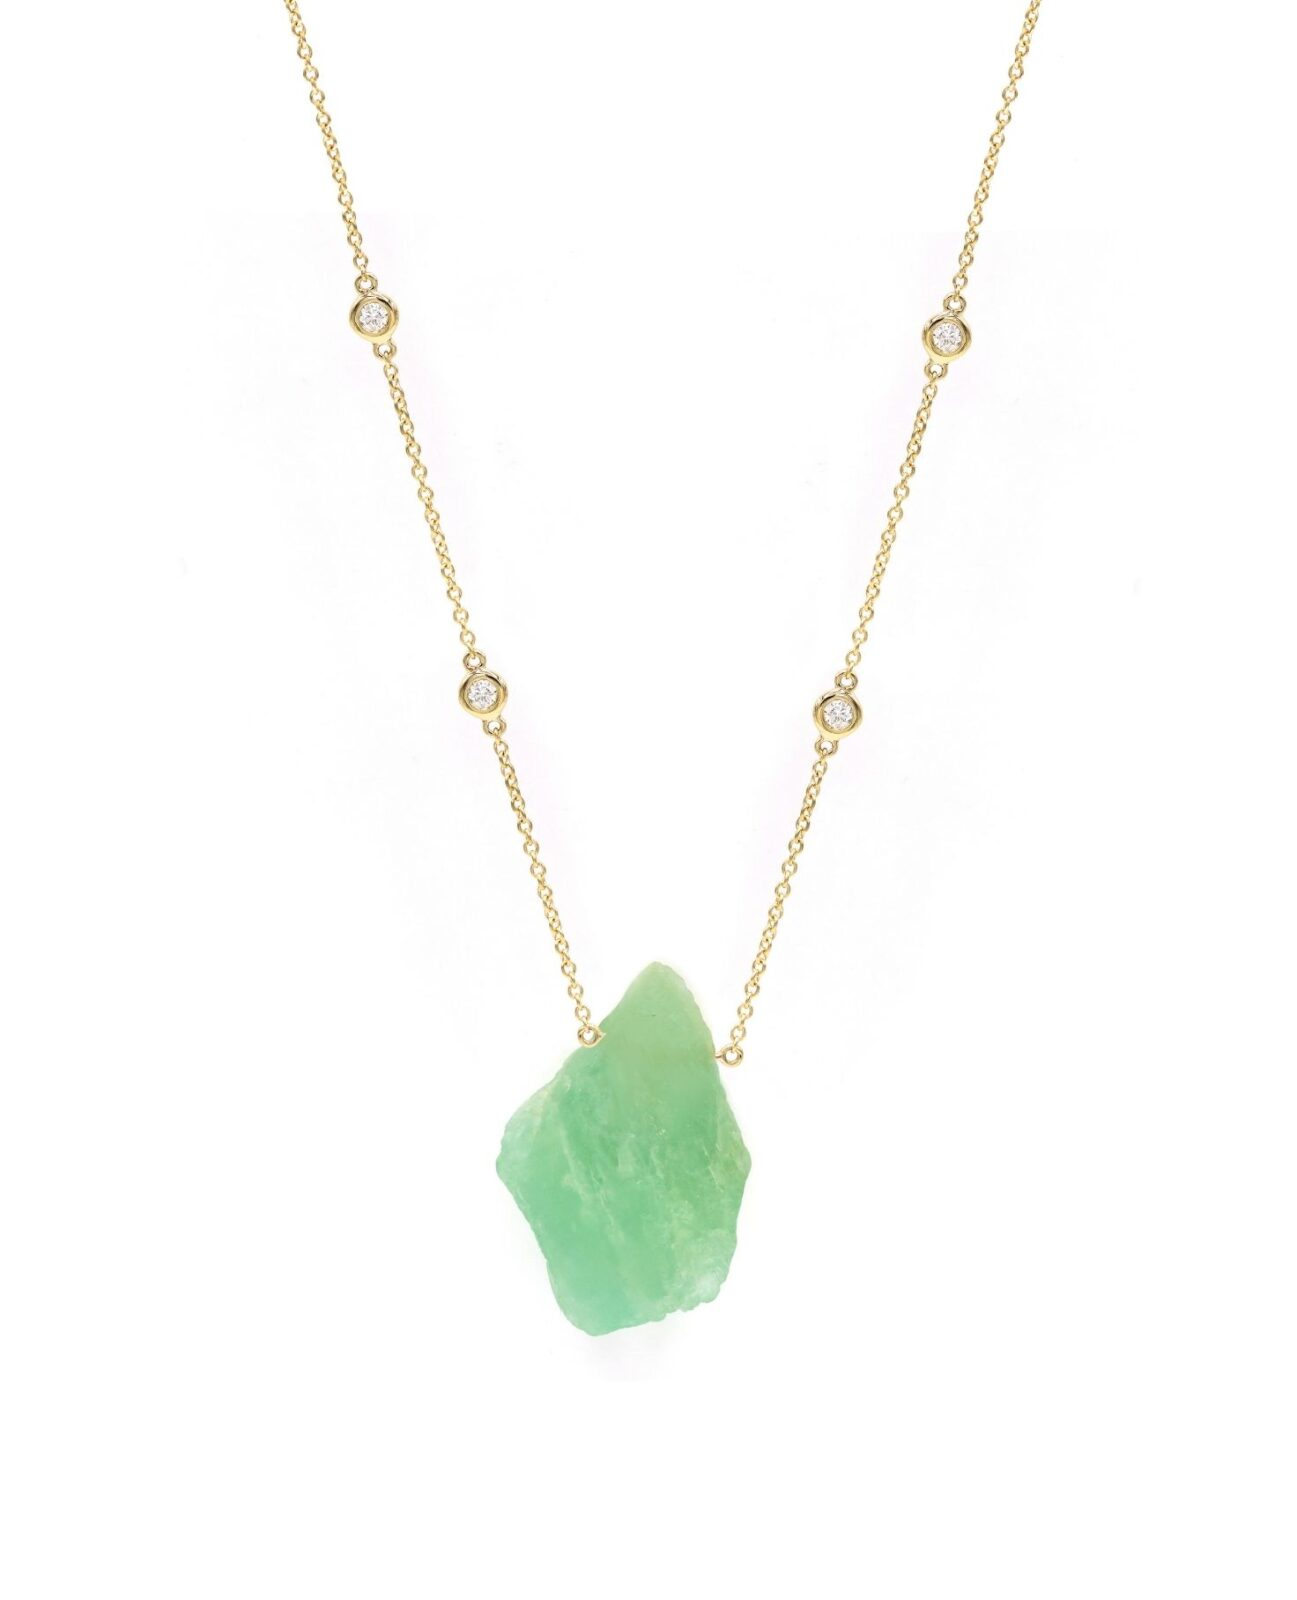 FLUORITE ROUGH CRYSTAL NECKLACE